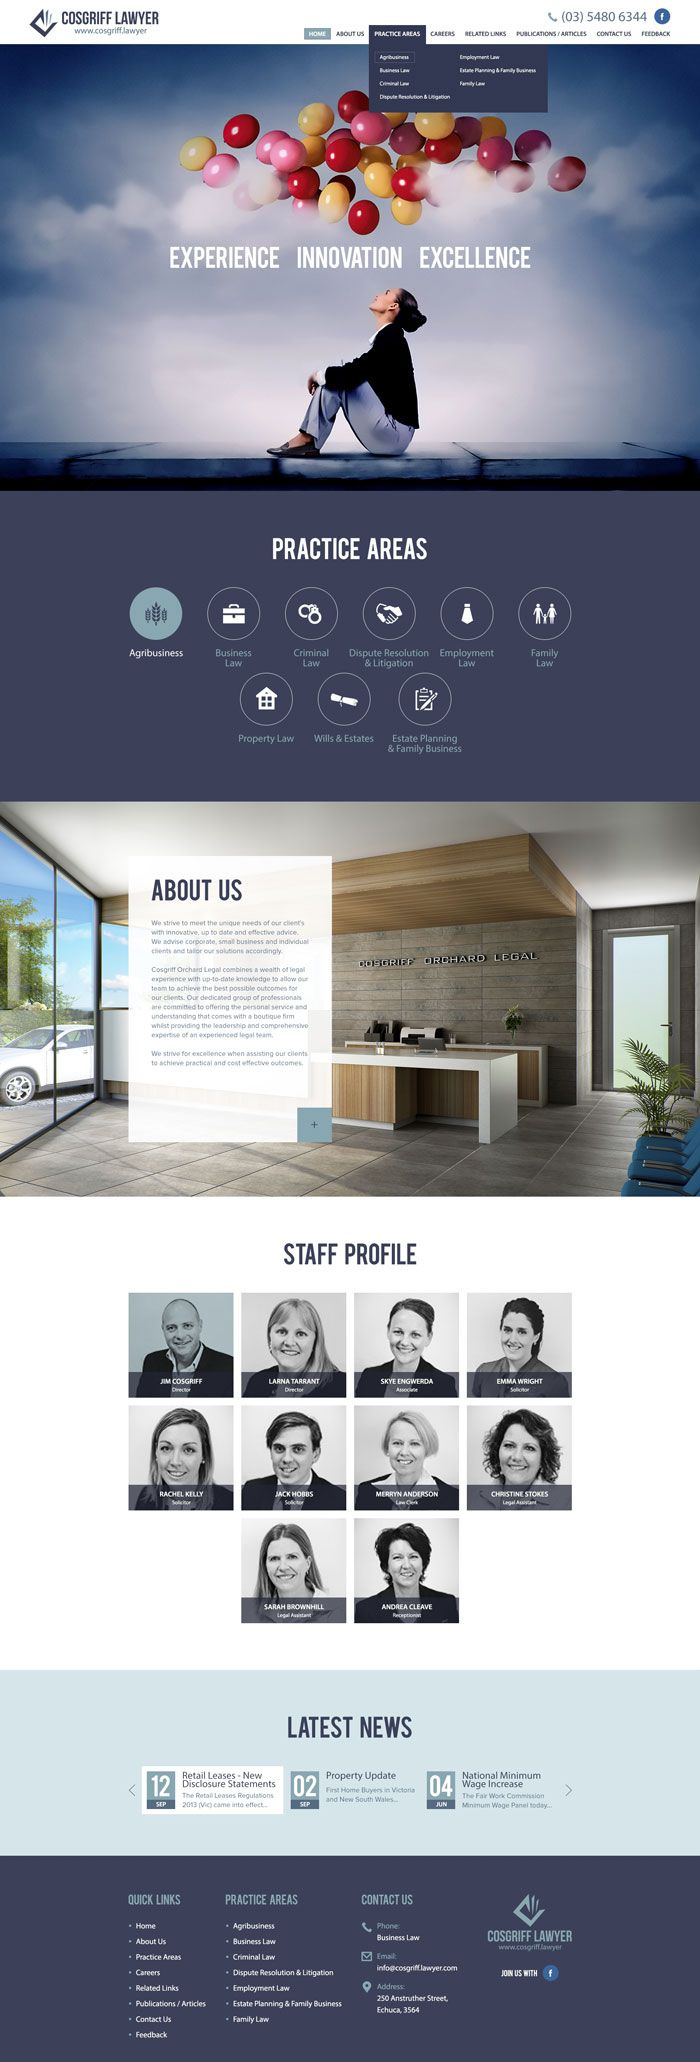 22 Best Law firm Websites Inspiration 22